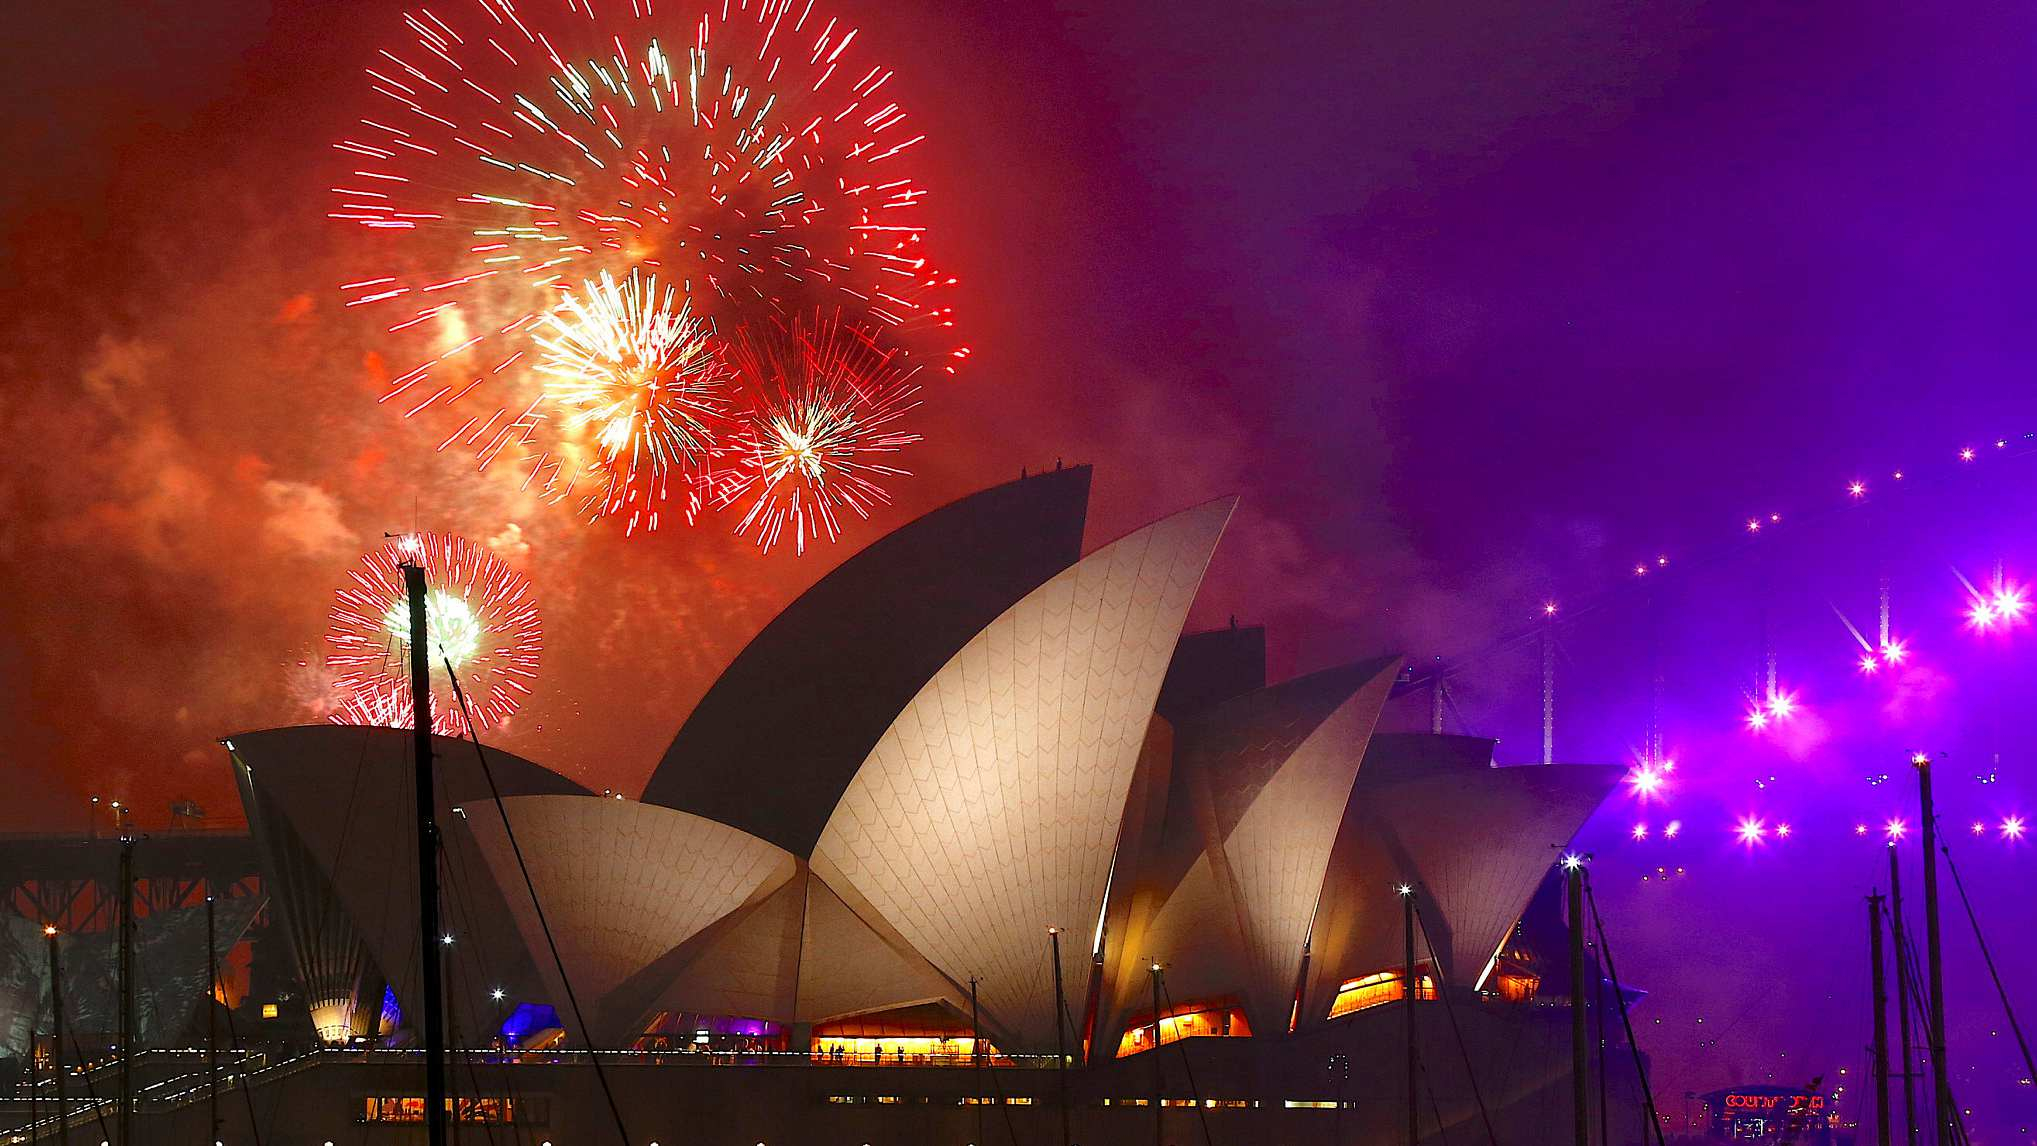 Sydney New Year's Eve show, gift to the world: mayor